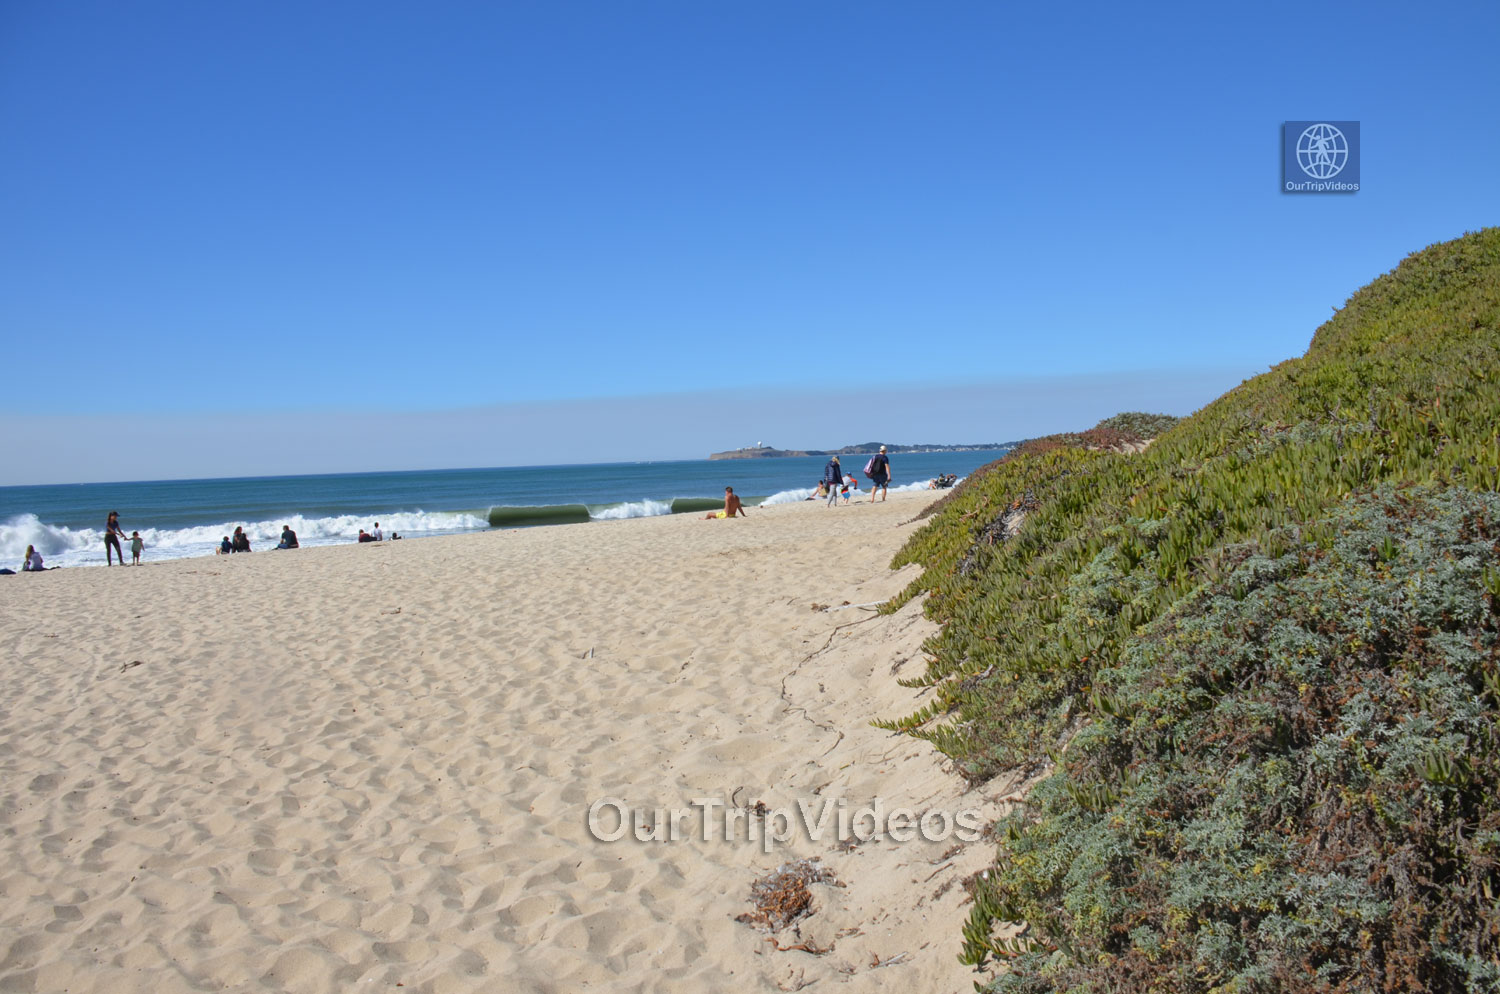 State Beach(Francis Beach), Half Moon Bay, CA, USA - Picture 24 of 25